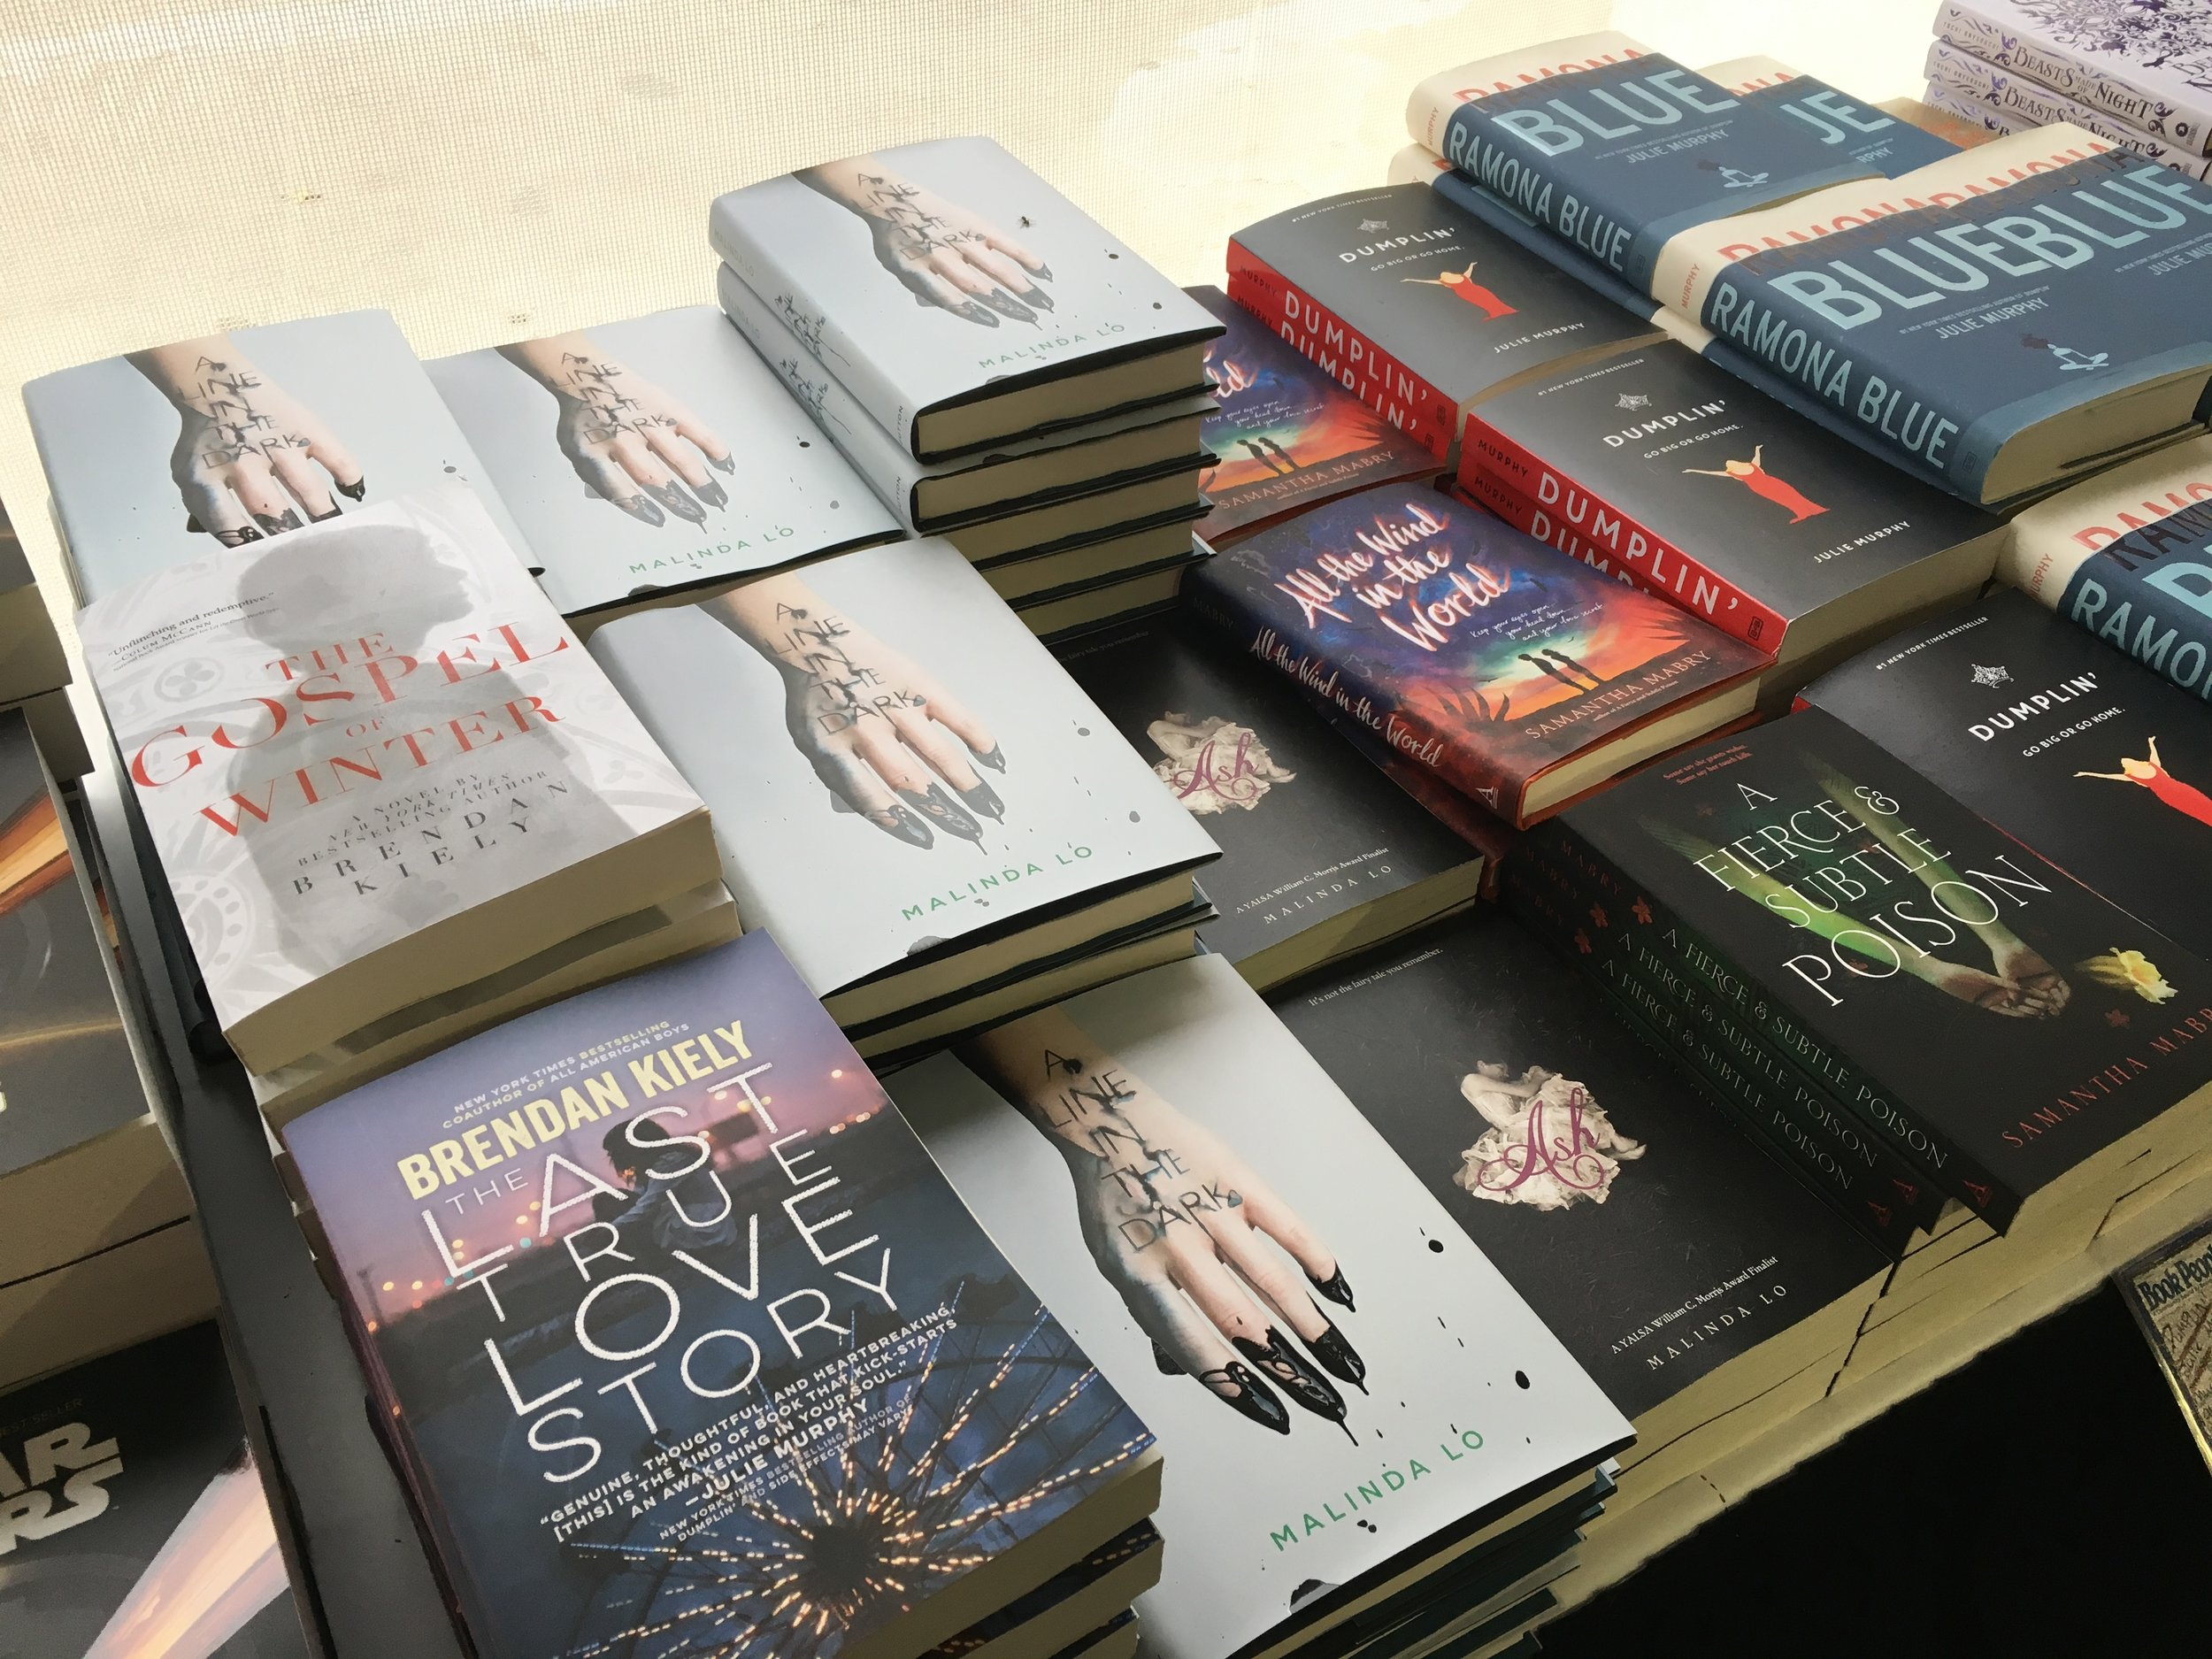 books for sale at the texas book festival in austin on nov. 4, 2017